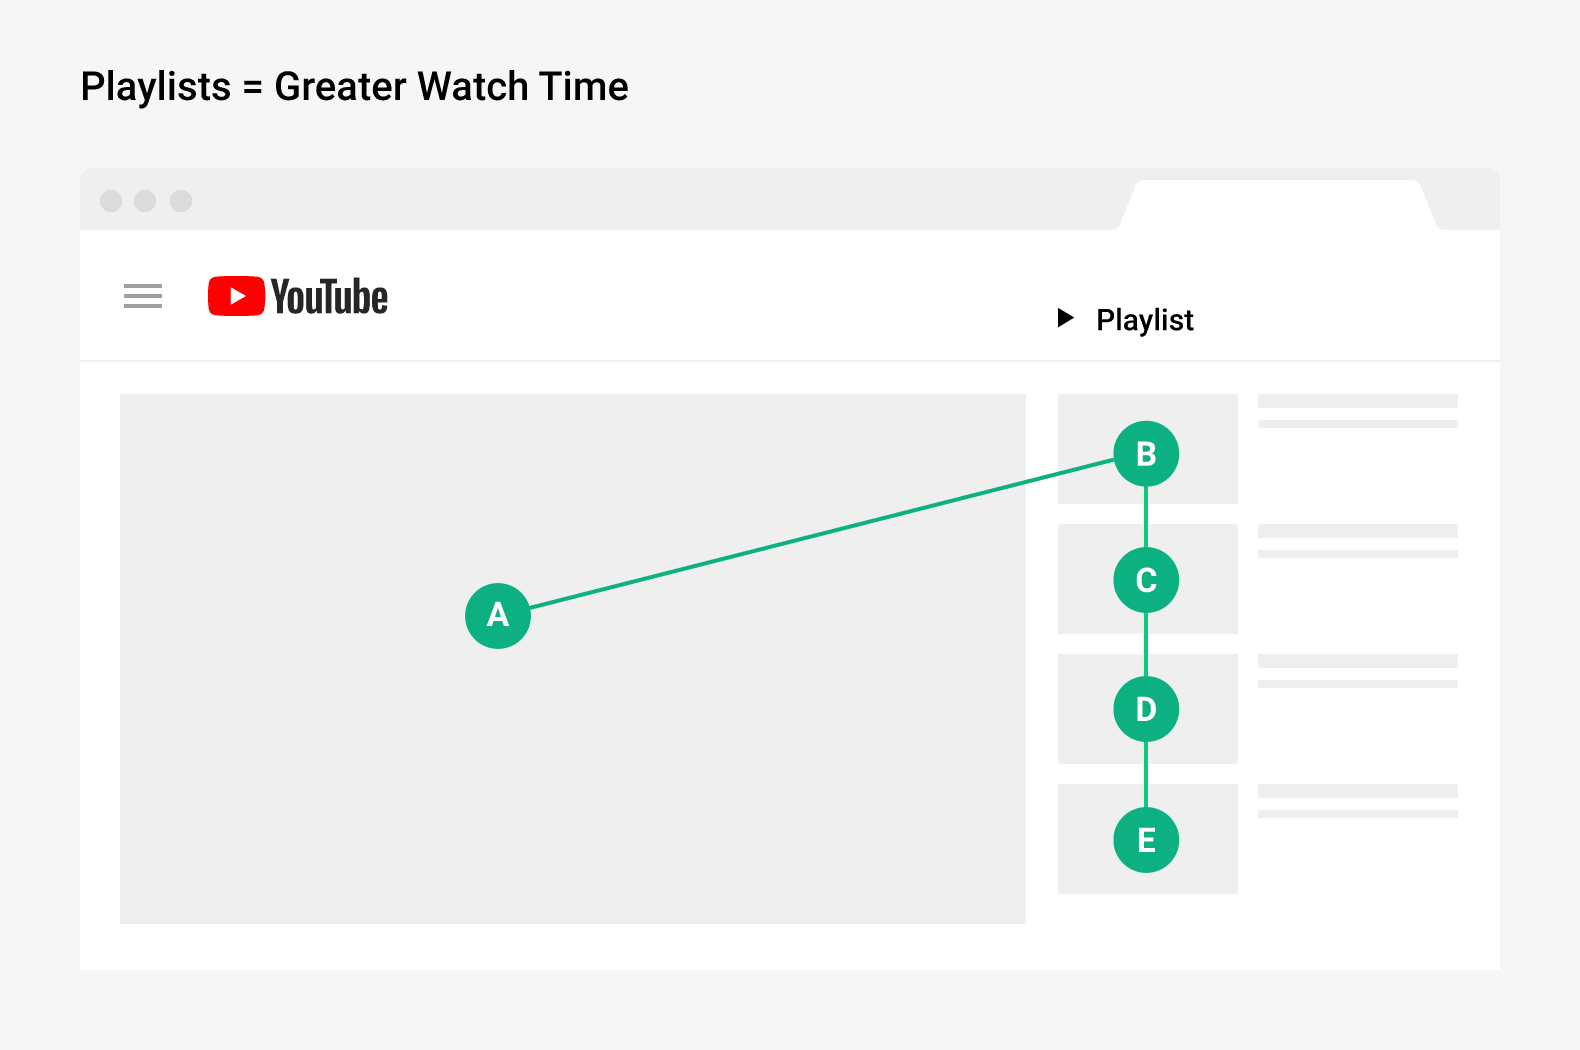 Playlists equals greater watch time